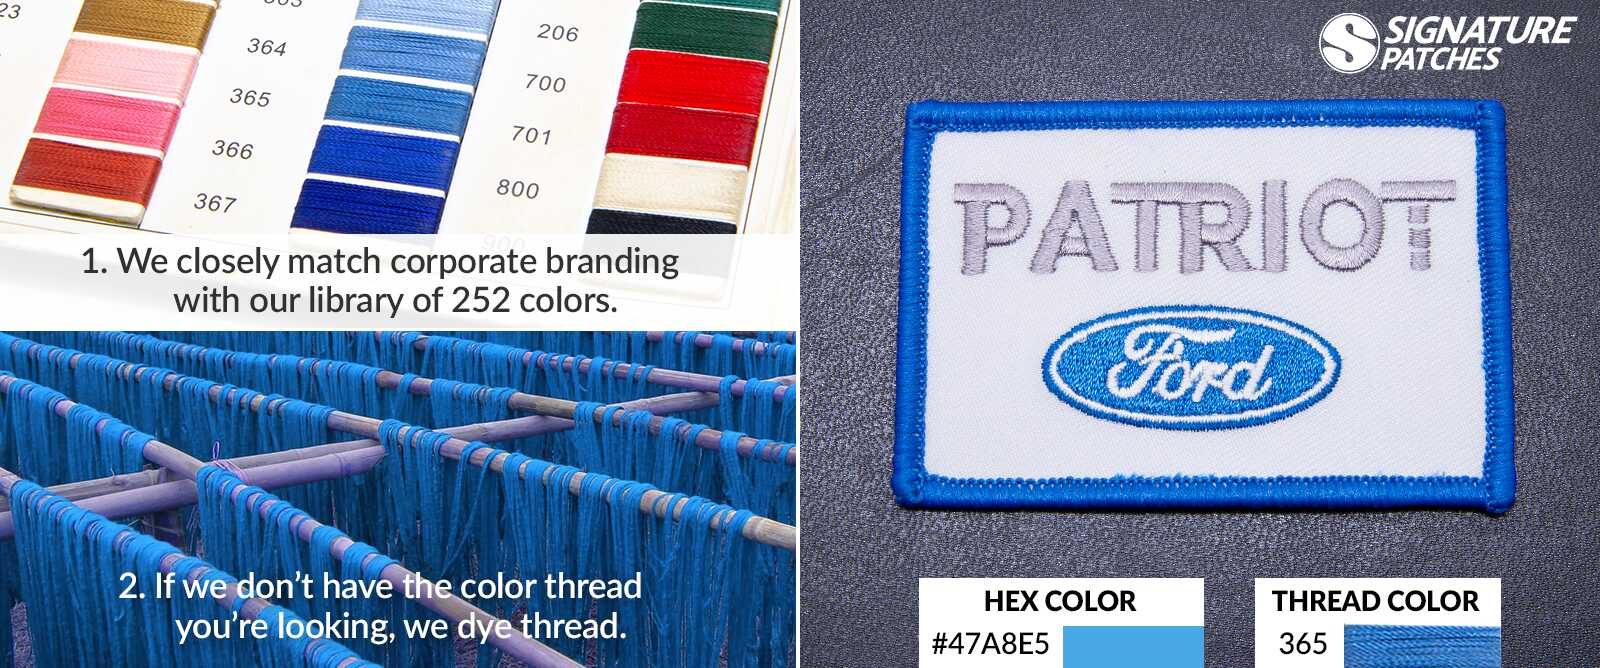 SignaturePatches - Corporate Thread Colors Ford Patch